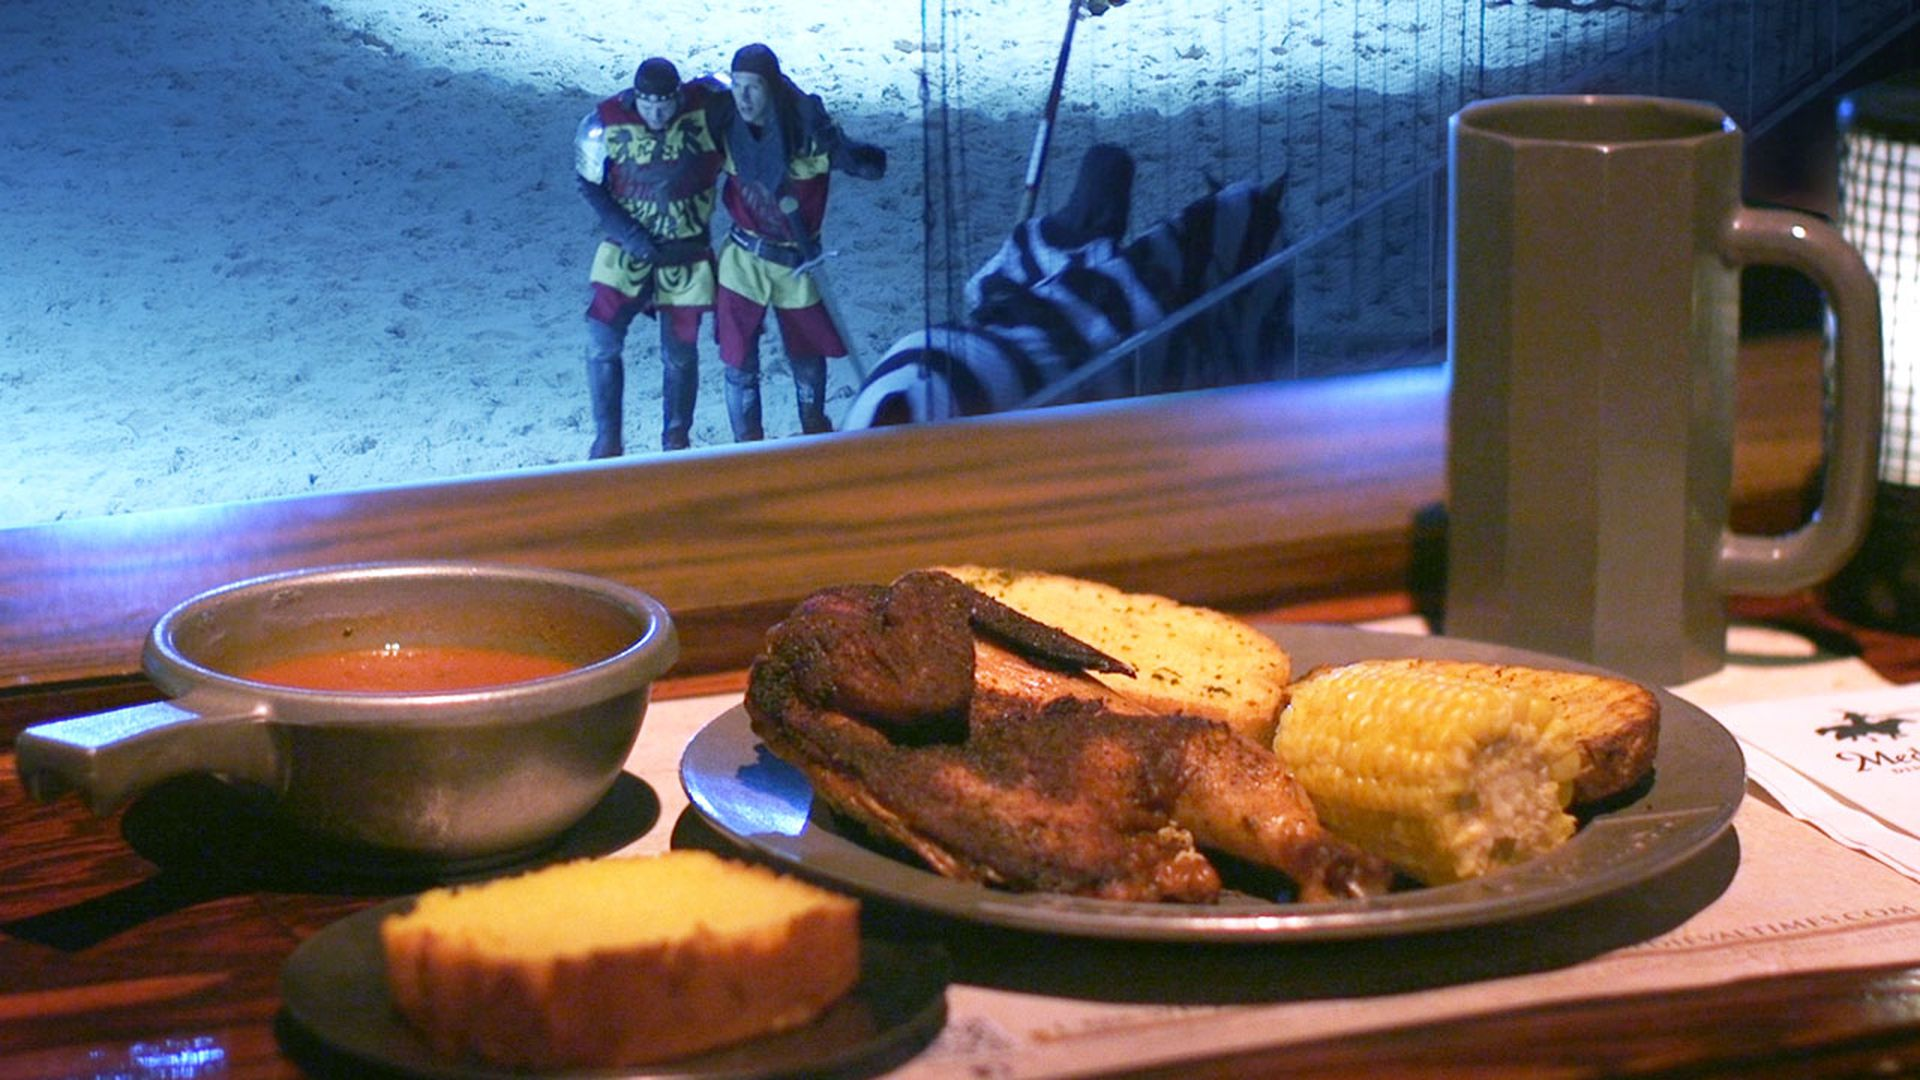 watch how medieval times serves 1 300 chicken dinners in 30 minutes